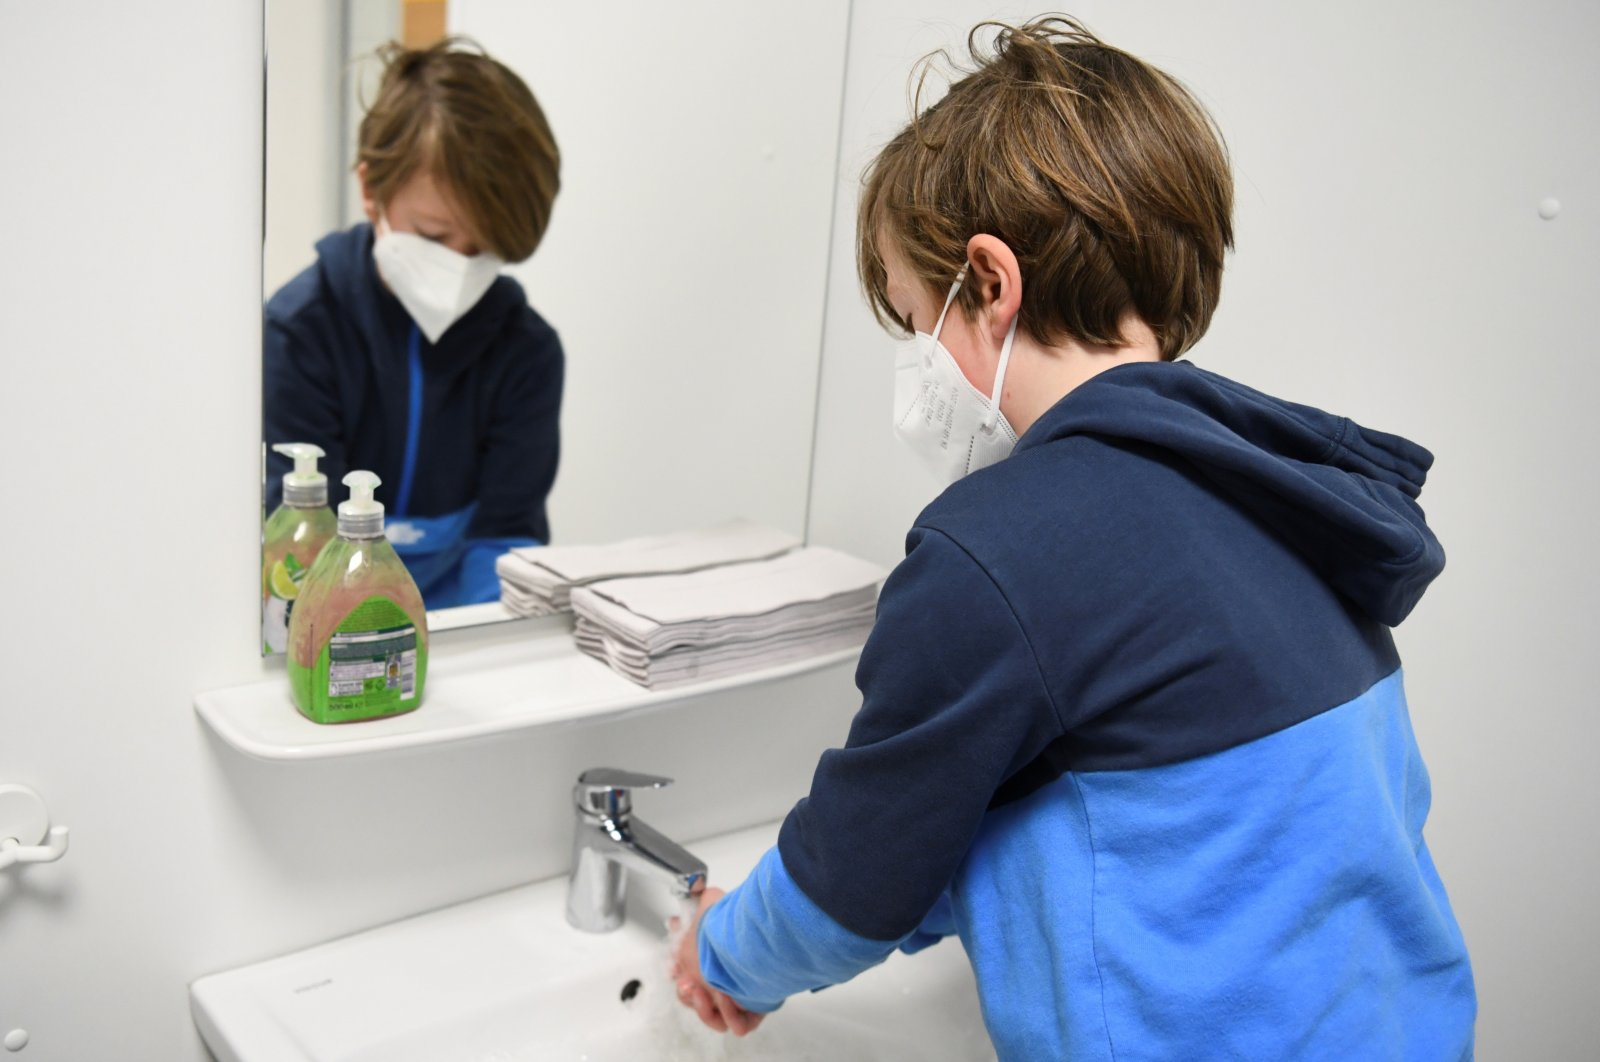 A schoolchild washes his hands before participating in a lesson at Gustav-Falke elementary school after it reopened according to first measures to lift the coronavirus disease (COVID-19) lockdown in Berlin, Germany, Feb. 22, 2021. (Reuters Photo)